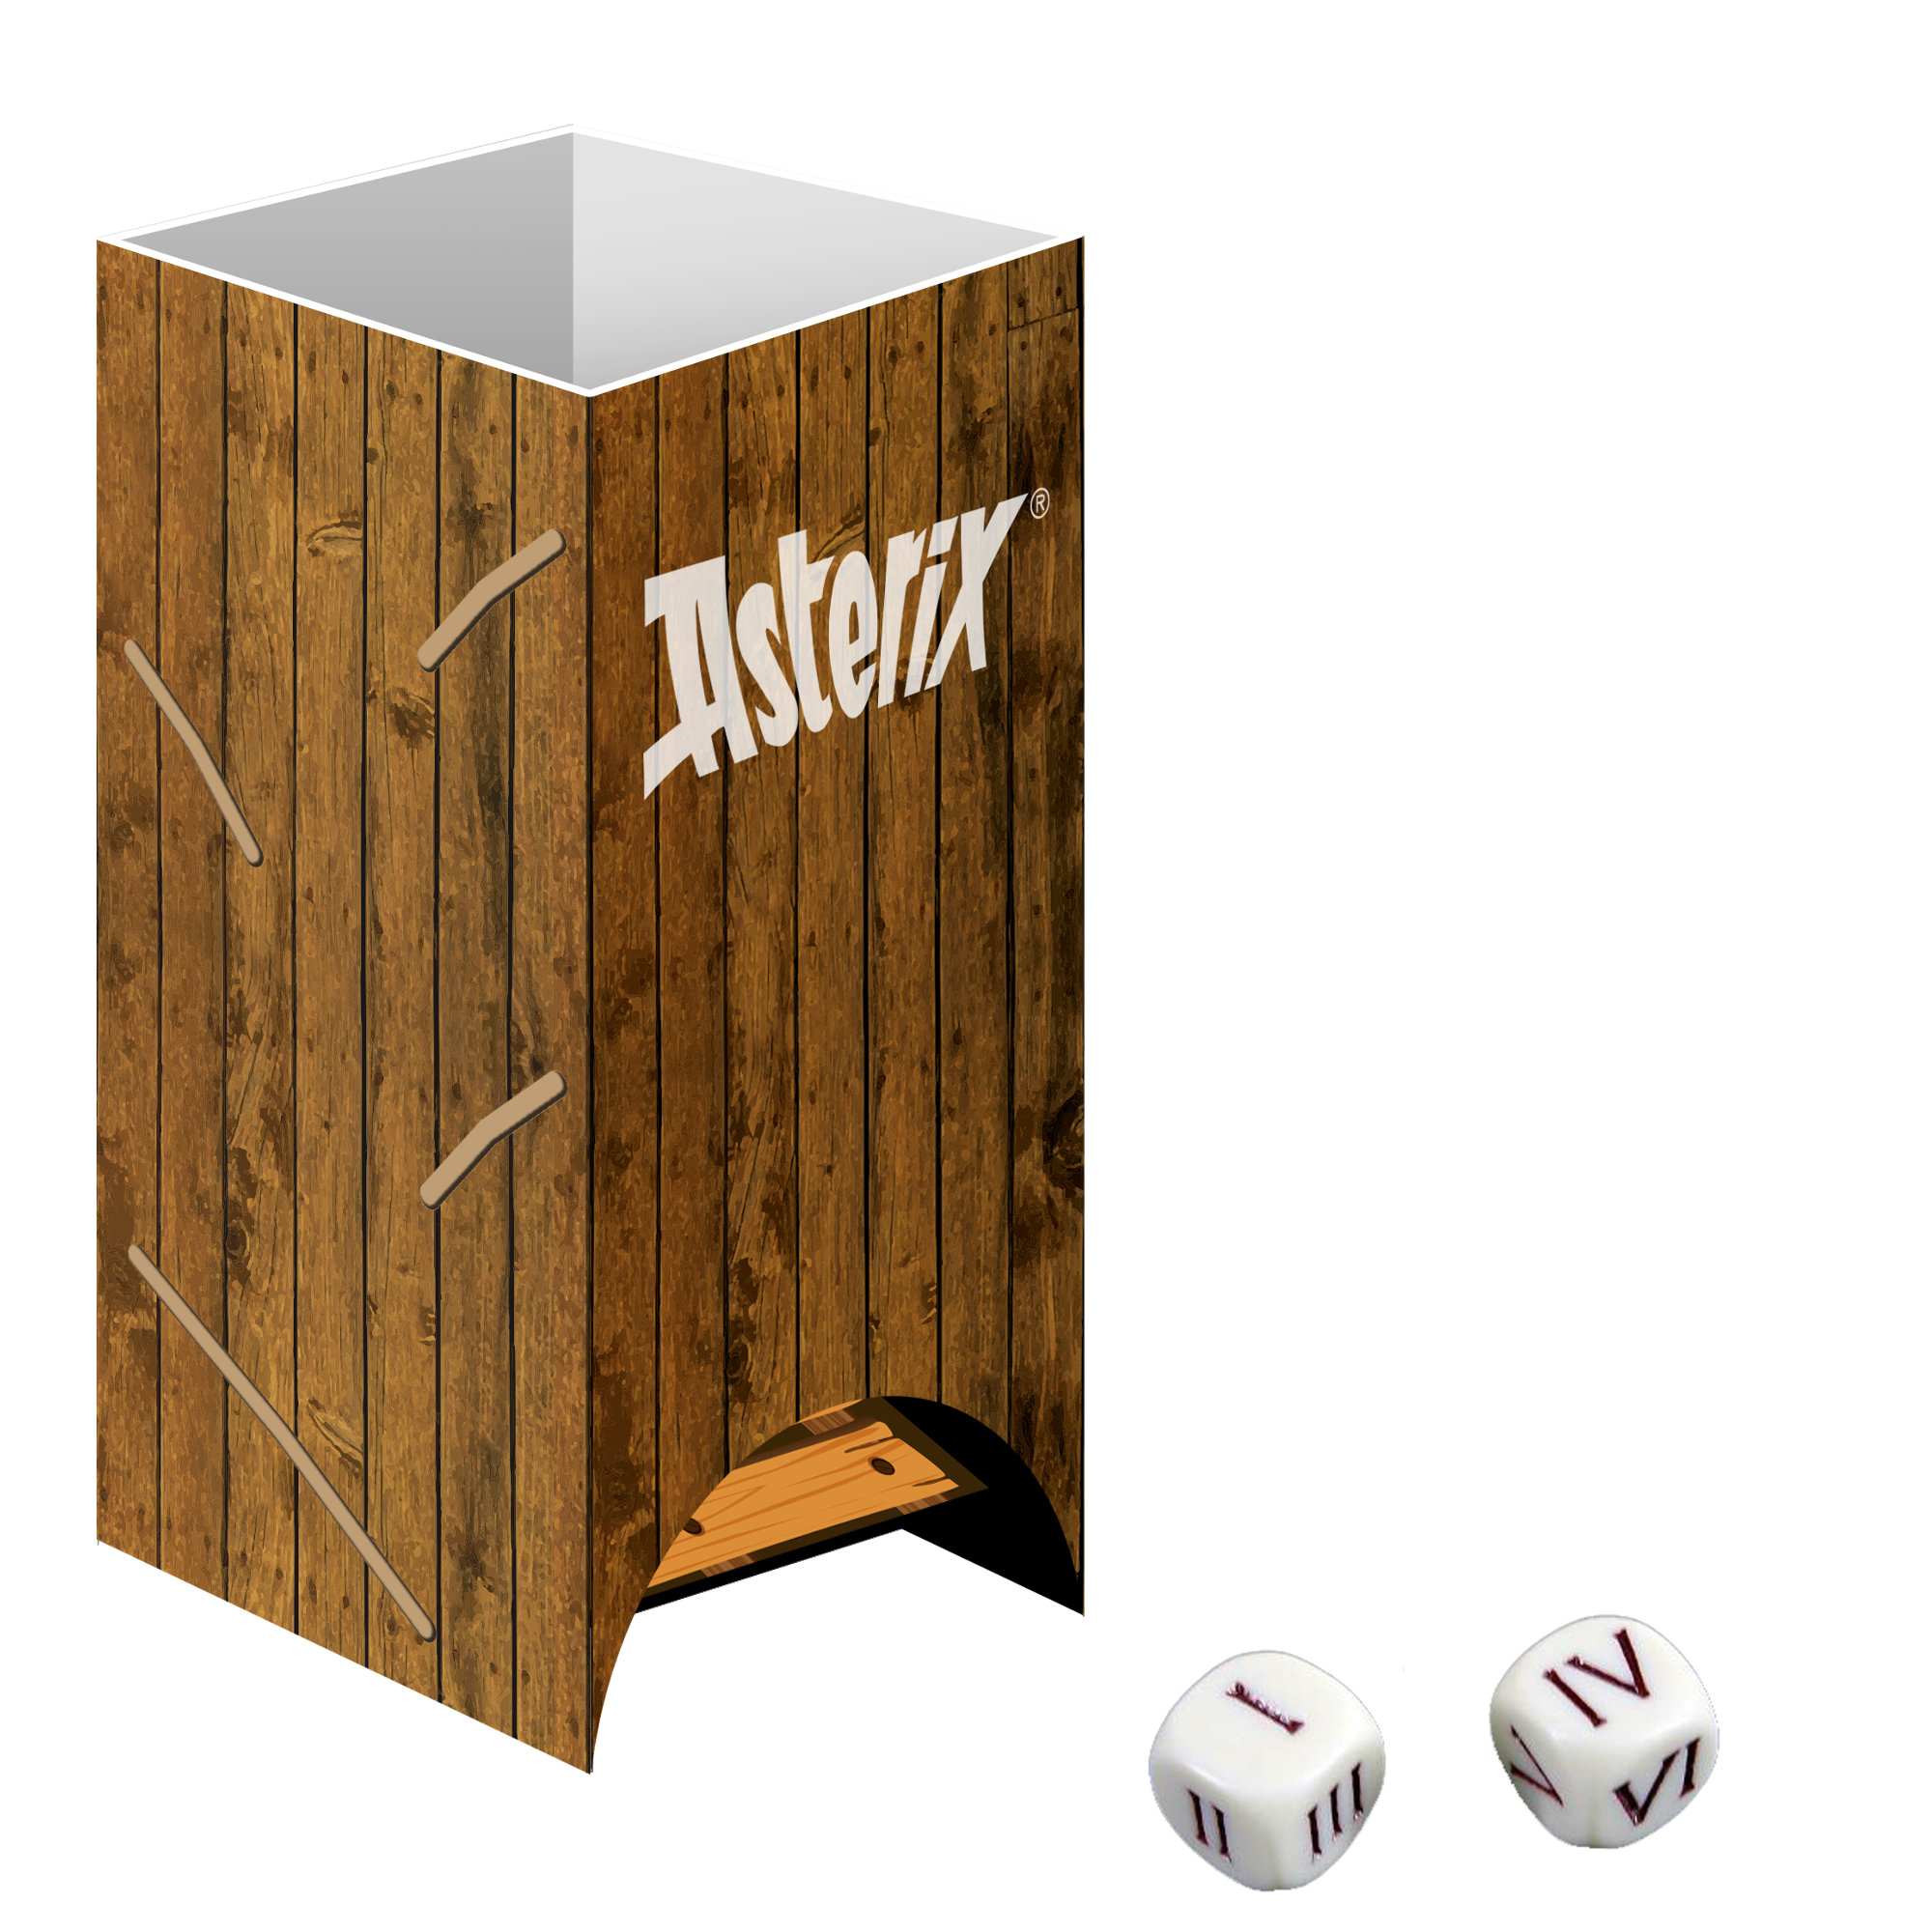 Monopoly Asterix und Obelix Collector's Edition Dice Tower